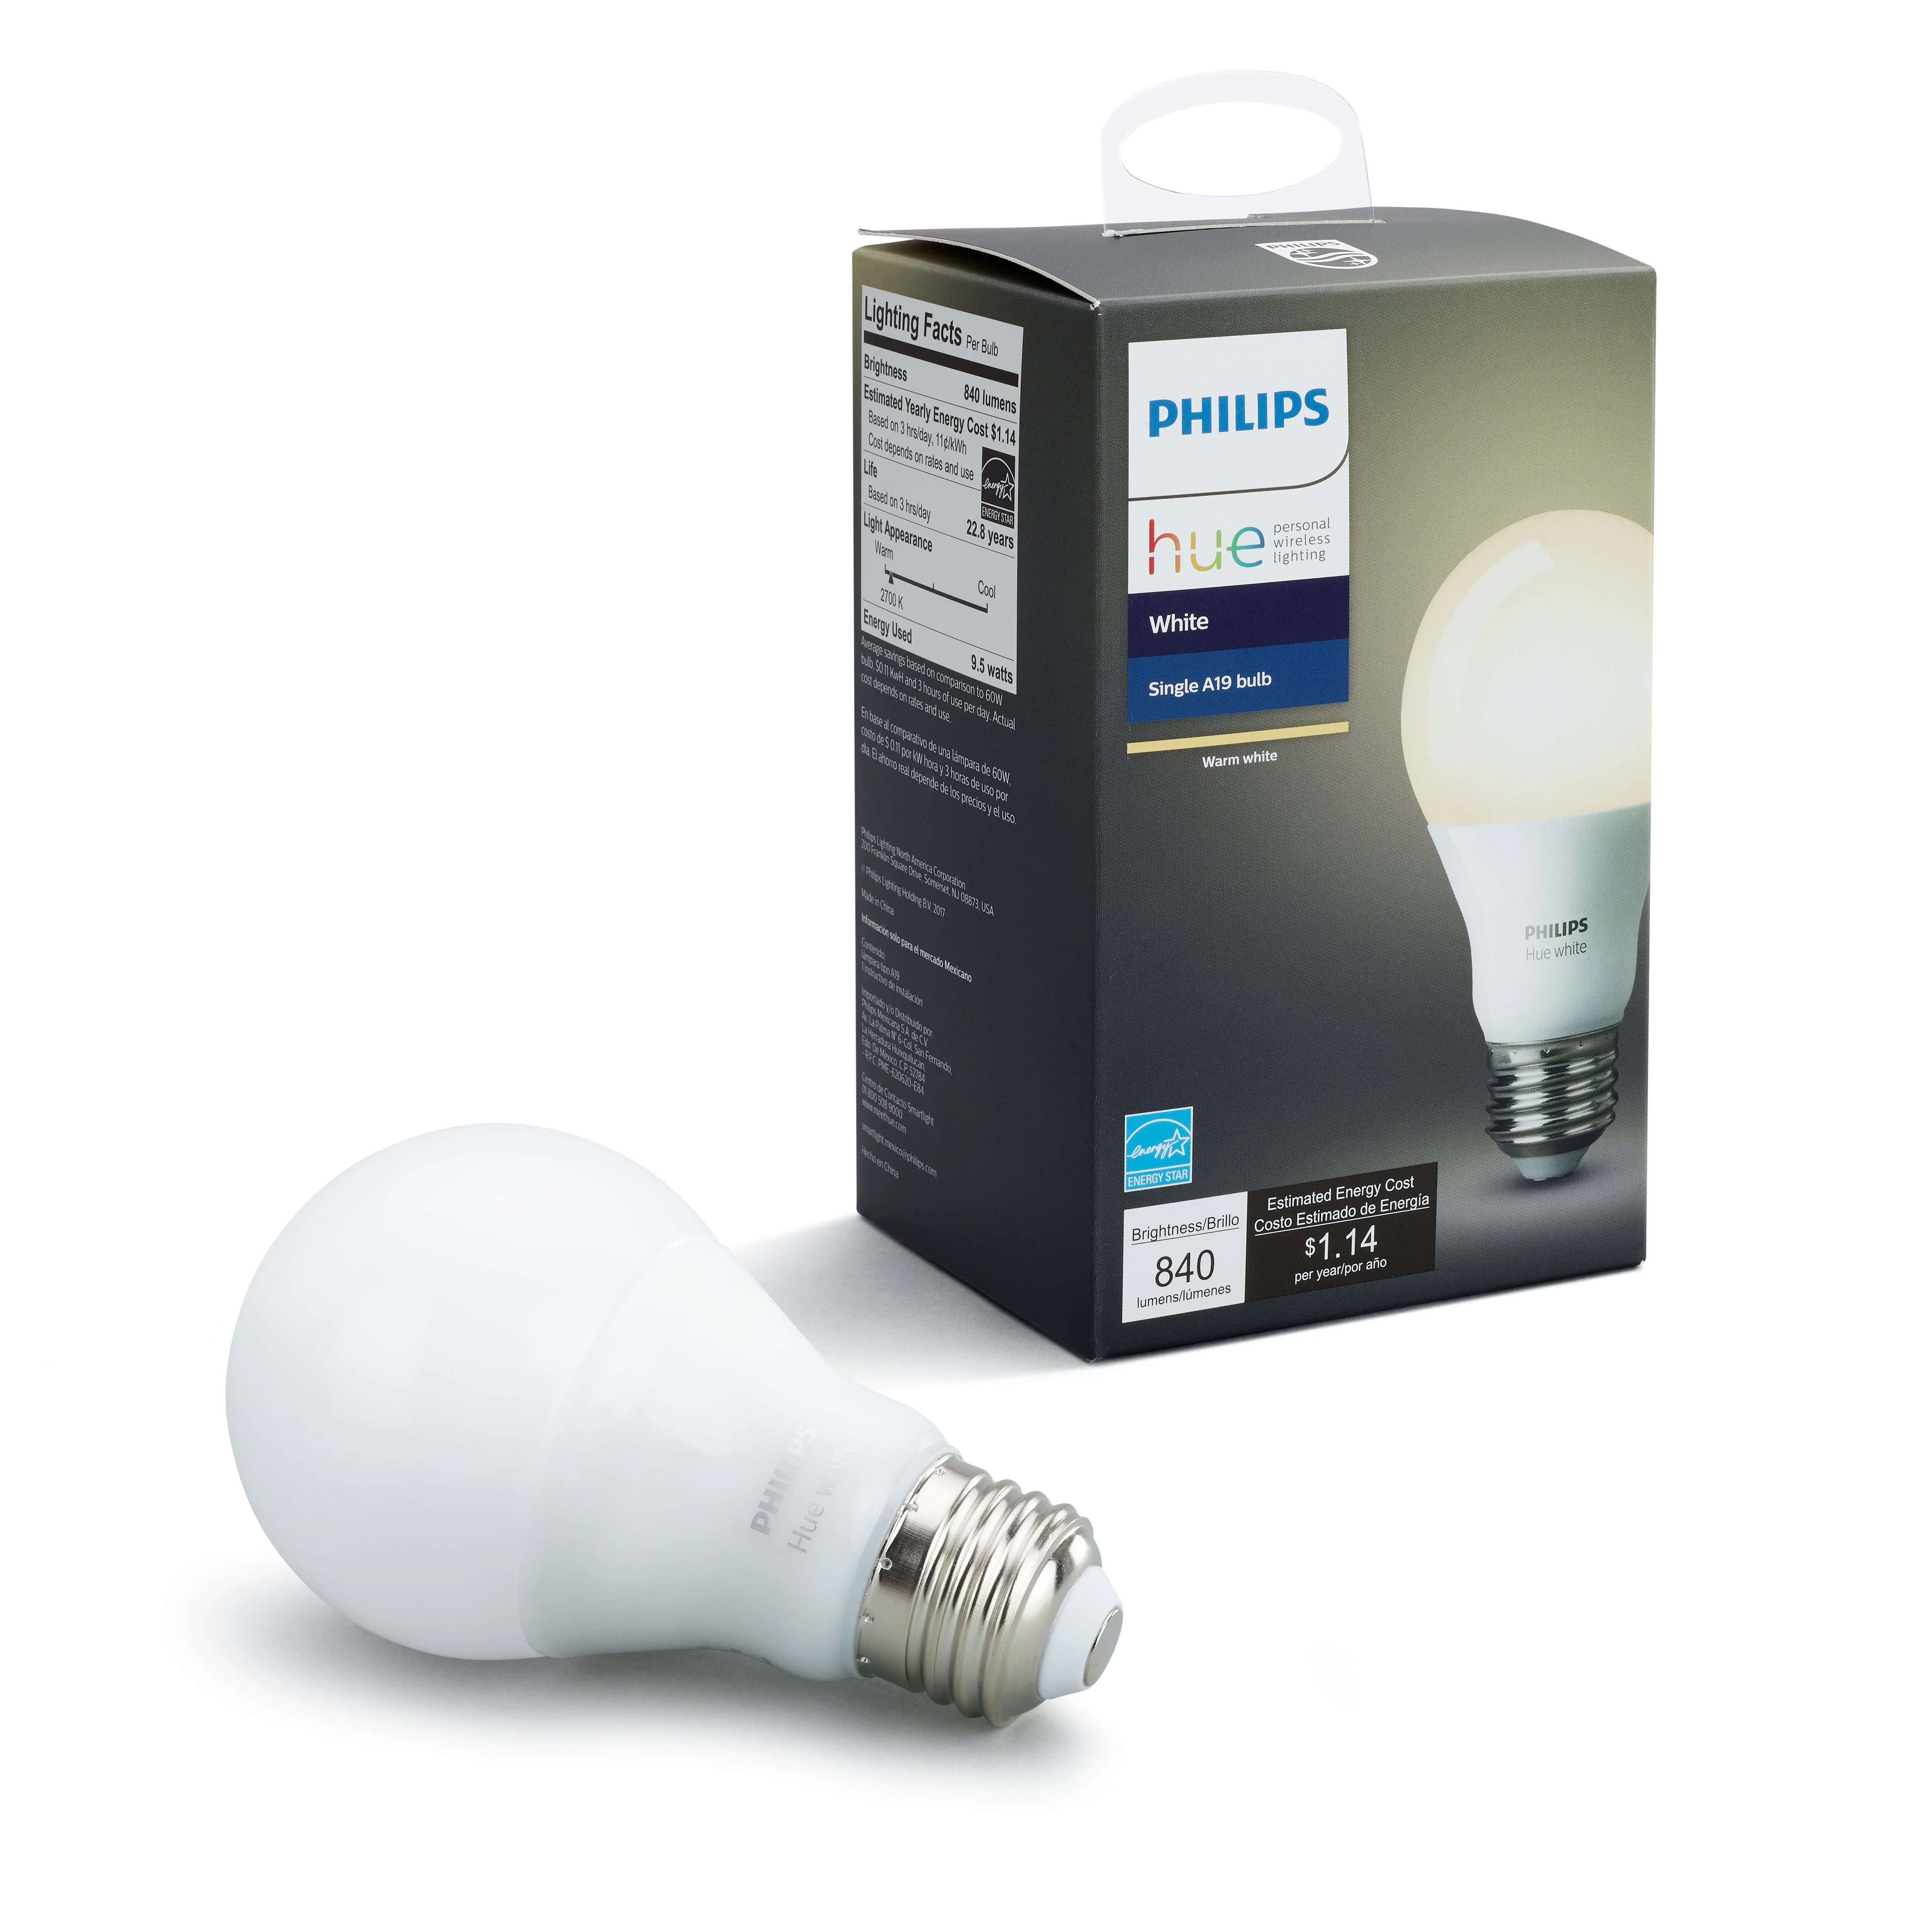 Smart Led Bulb Philips Hue White A19 Smart Light Bulb 60w Led 1 Pack